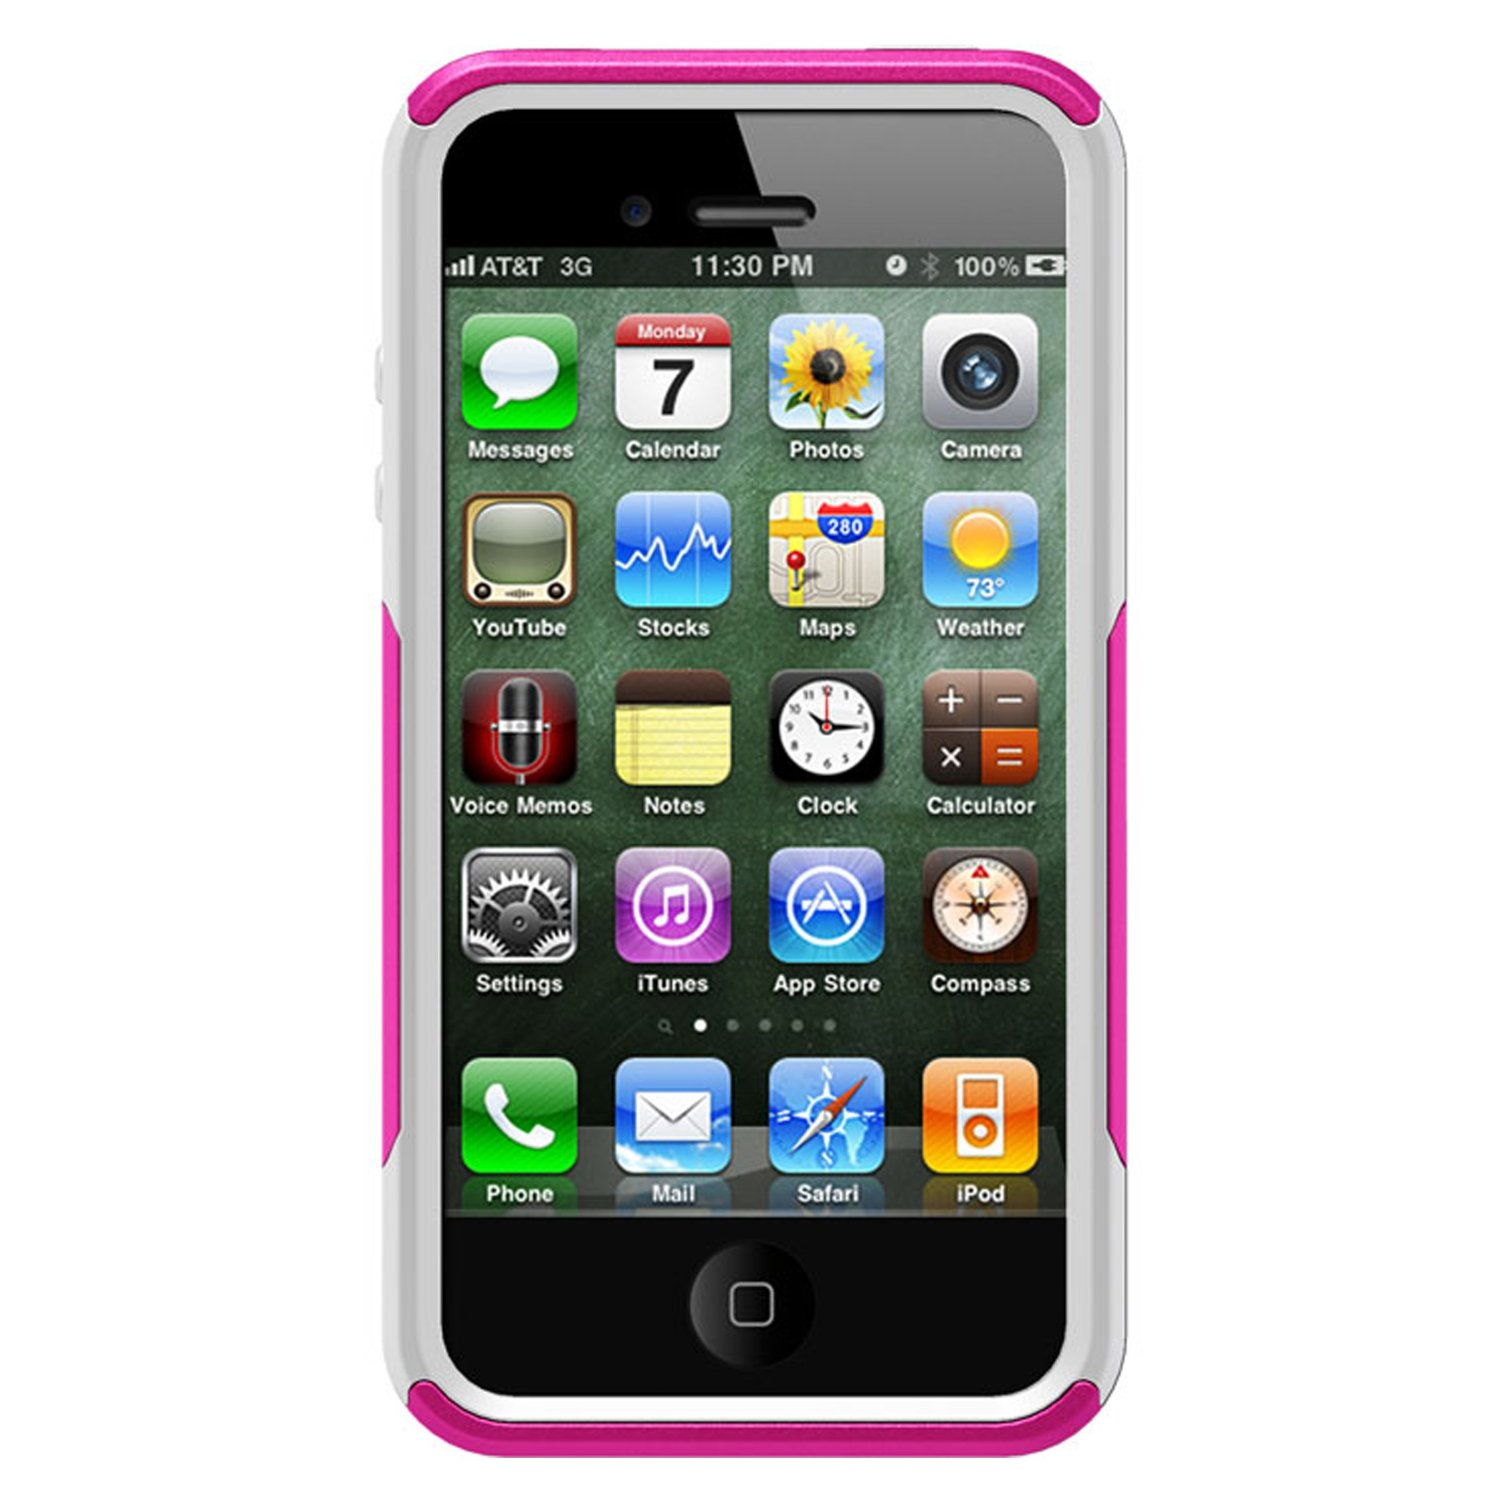 Otter Box iPhone 4S Commuter, Pink/White, iPhone 4/4S